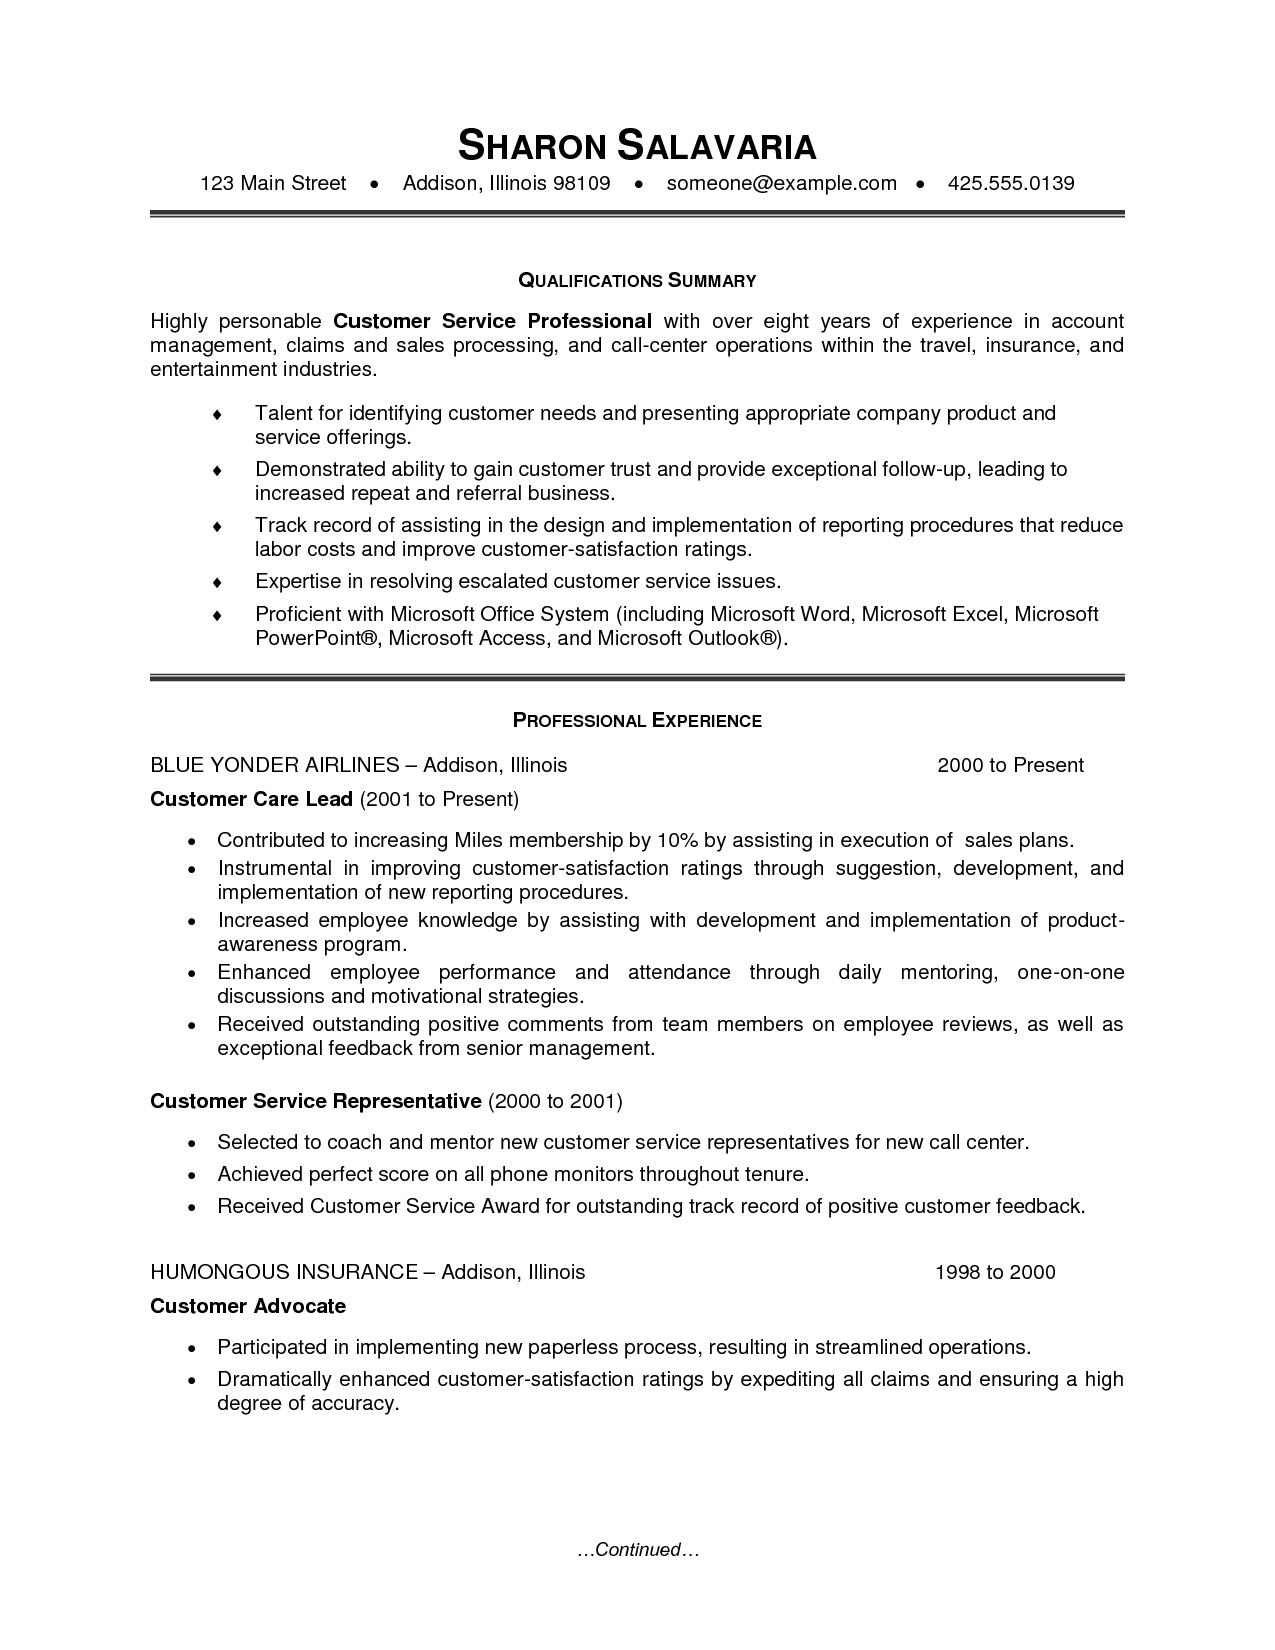 Resume Template For Customer Service Representative Claims Representative Resume Sample Samplebusinessresume